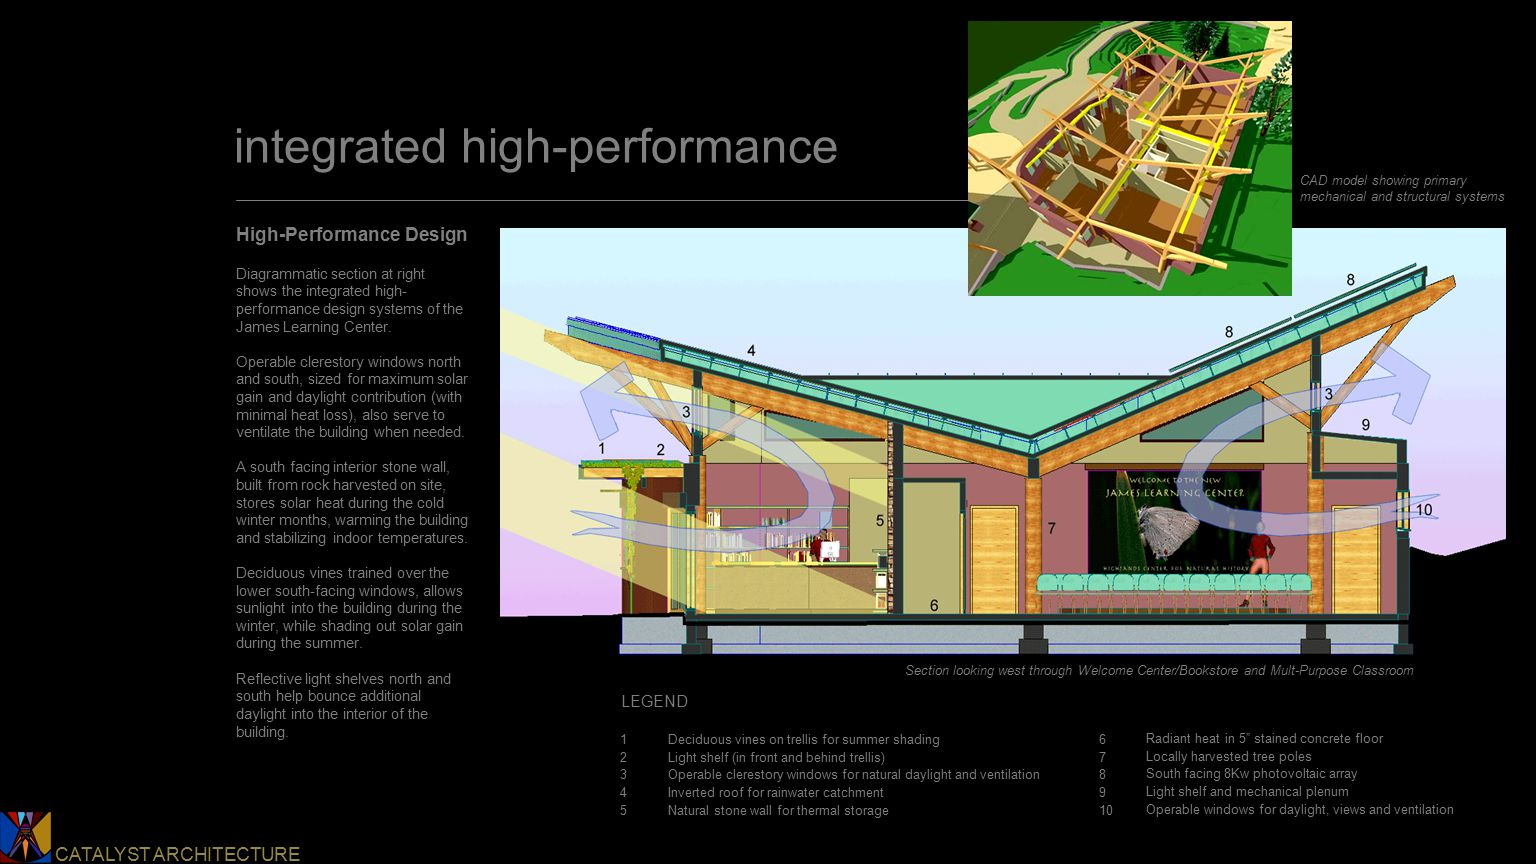 Catalyst Architecture CATALYST ARCHITECTURE organic design An Expression of Values Computer modeling established the precise curve of the roof in order to provide effective shading for the clerestory windows during the cooling season, while allowing solar gain to penetrate the upper windows during the winter heating season.